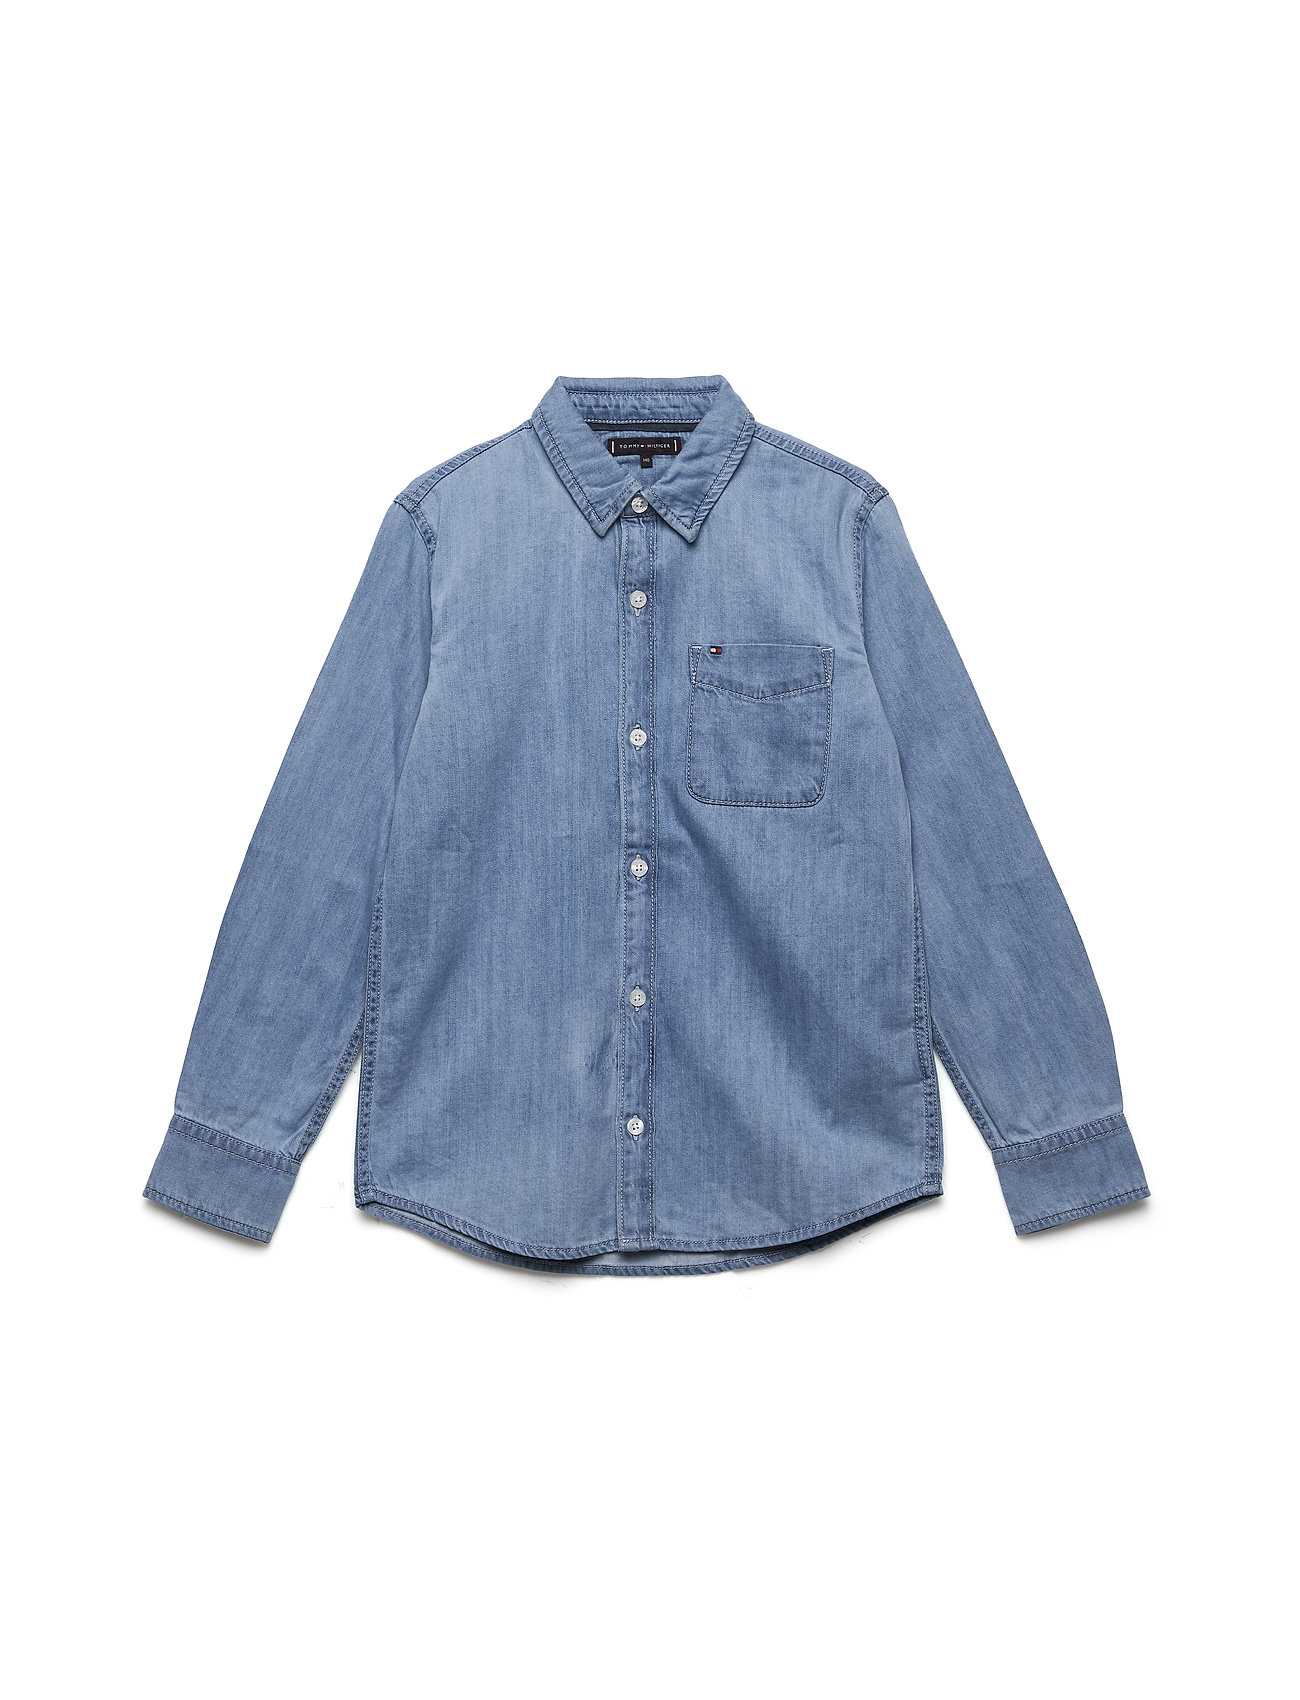 Tommy Hilfiger BOYS DENIM SHIRT REDLI L/S